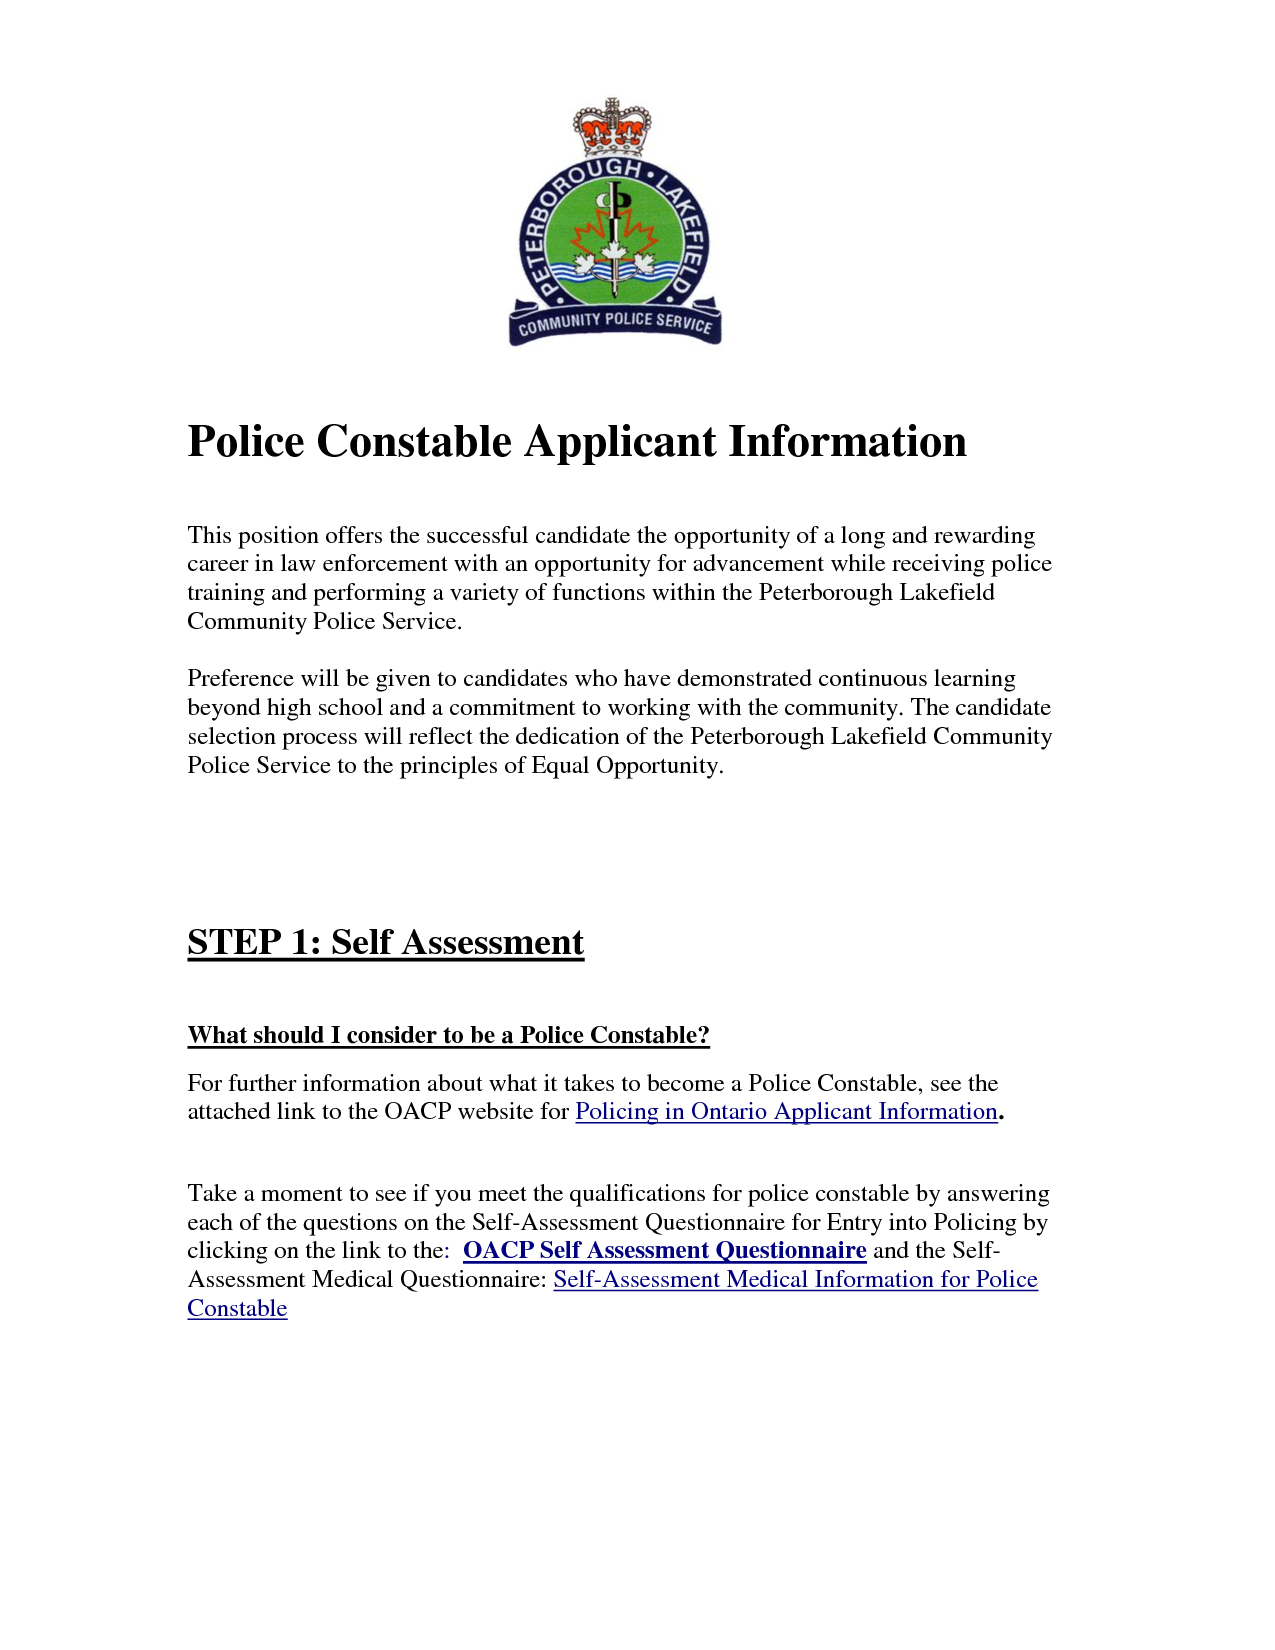 Police Constable Resume By Bdr  Cover Latter Sample